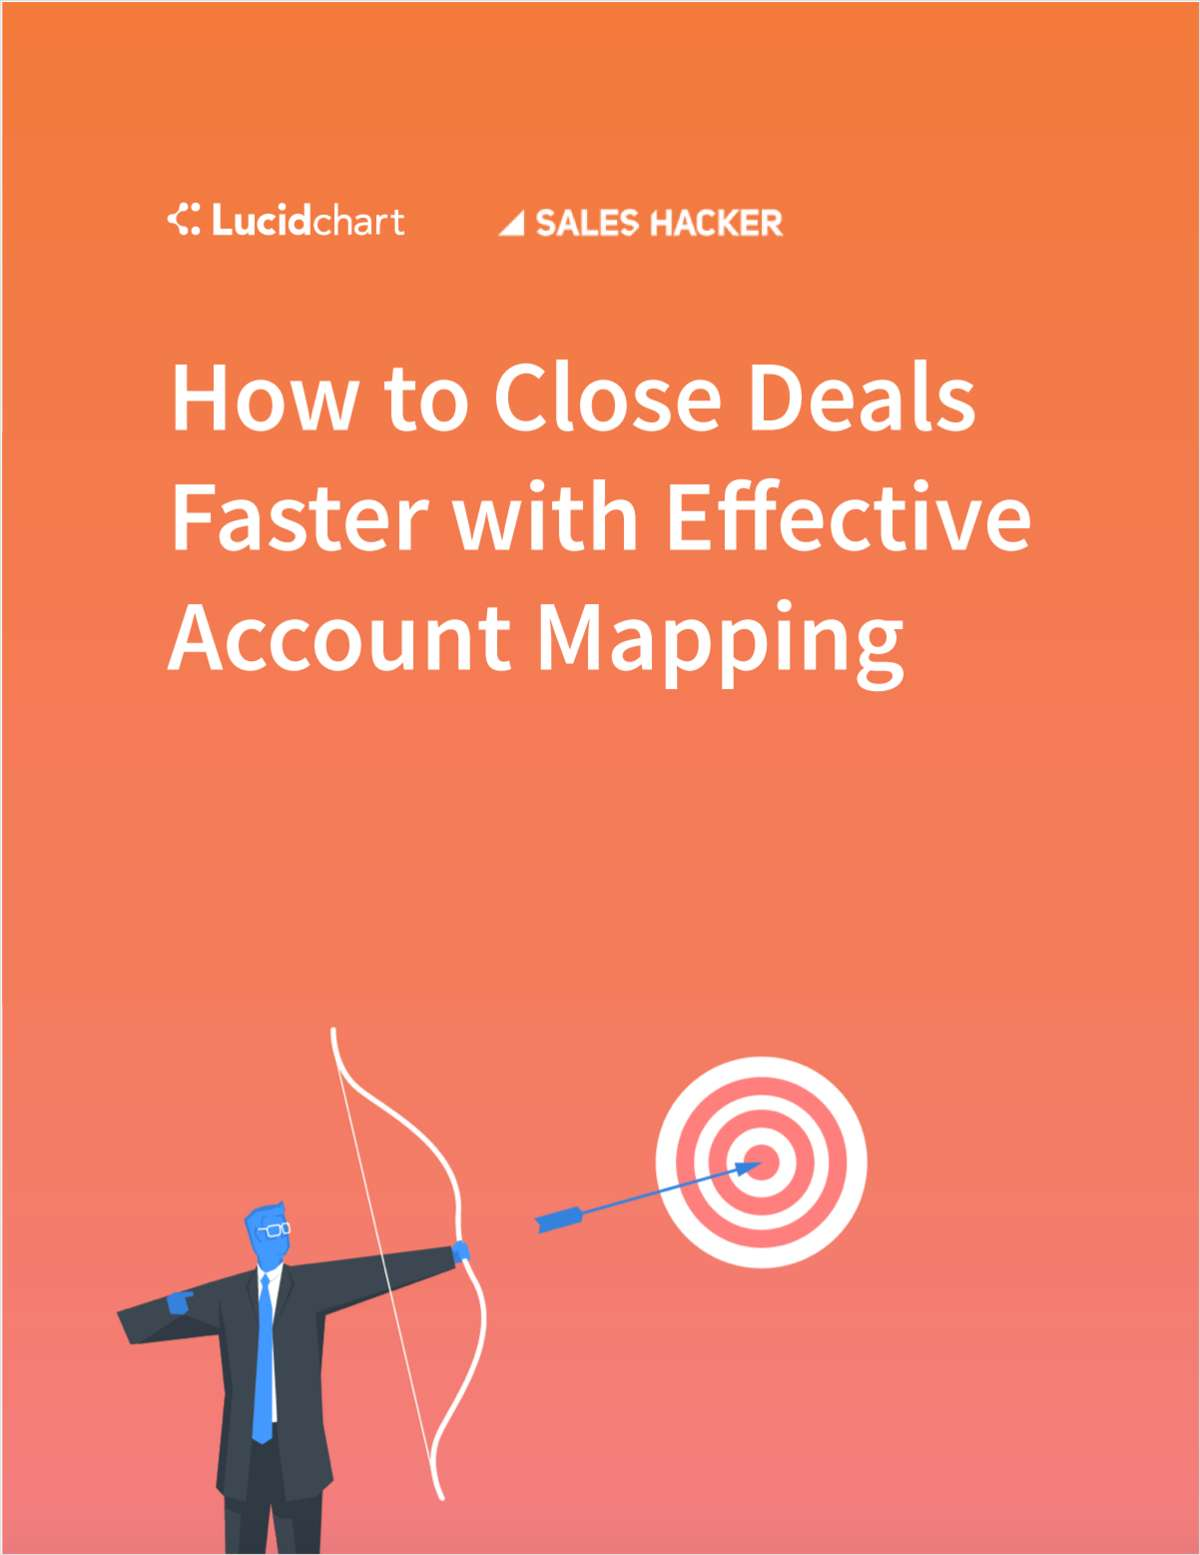 How to Close Deals Faster with Effective Account Mapping